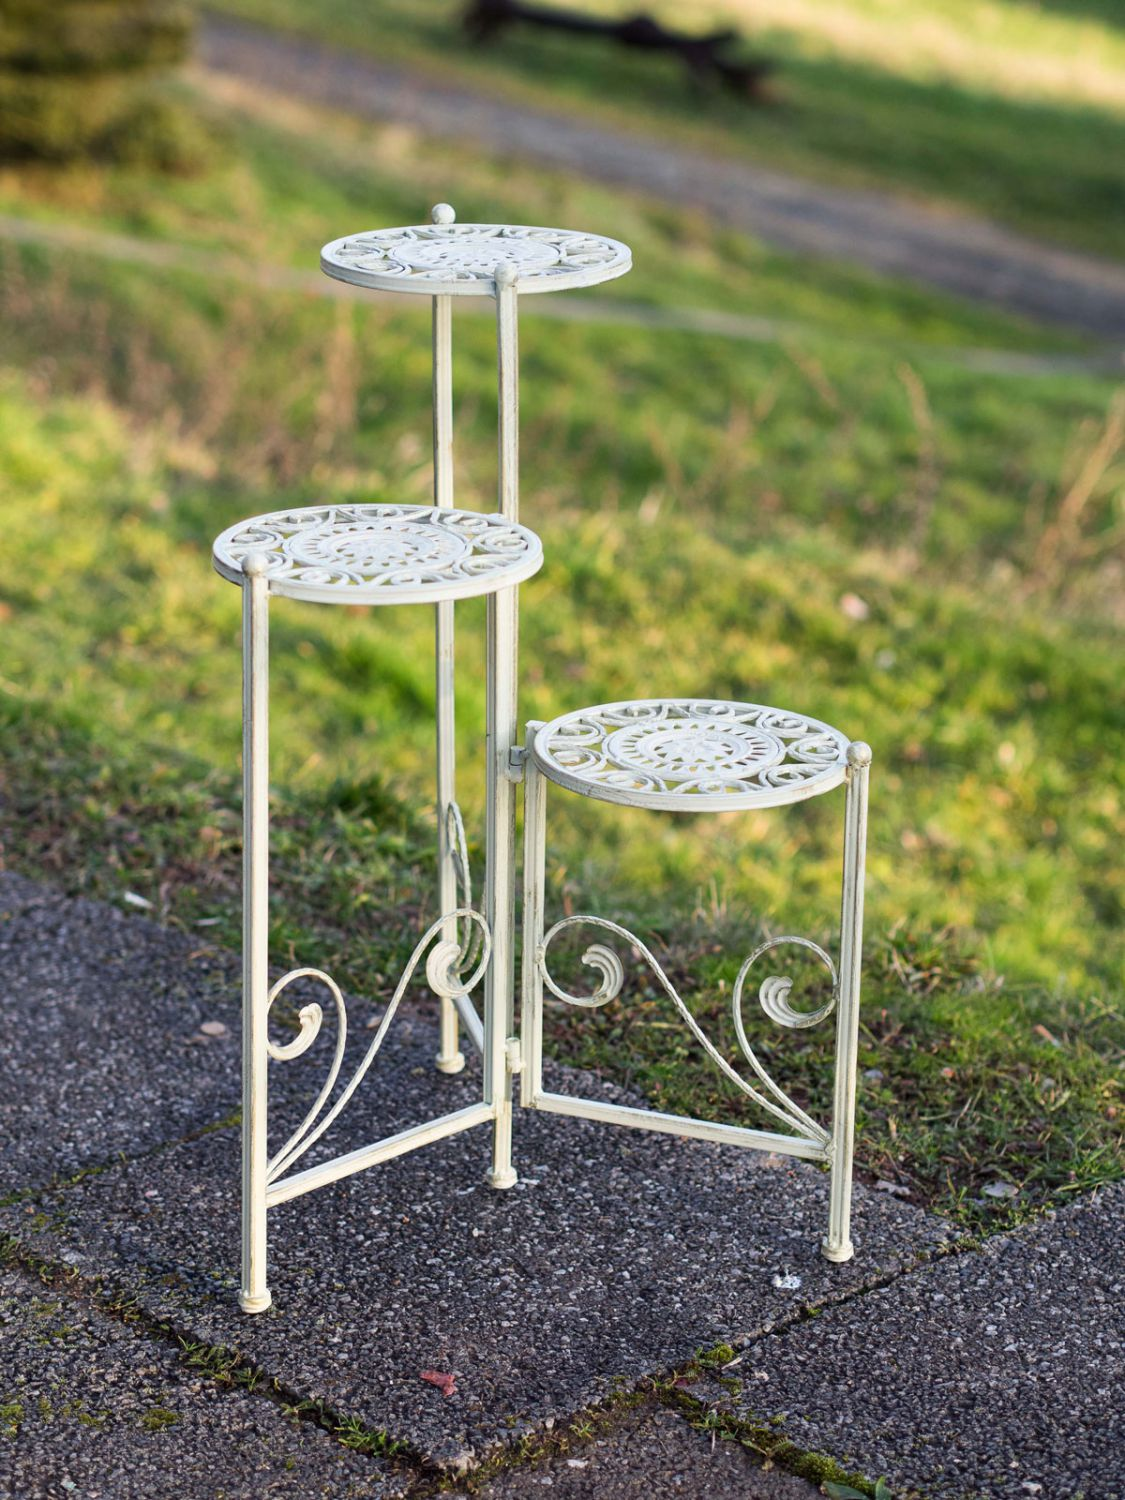 White Pedestal Plant Stands 3 Stage Flowers Bank Nostalgia Stand Plant Stairs Iron